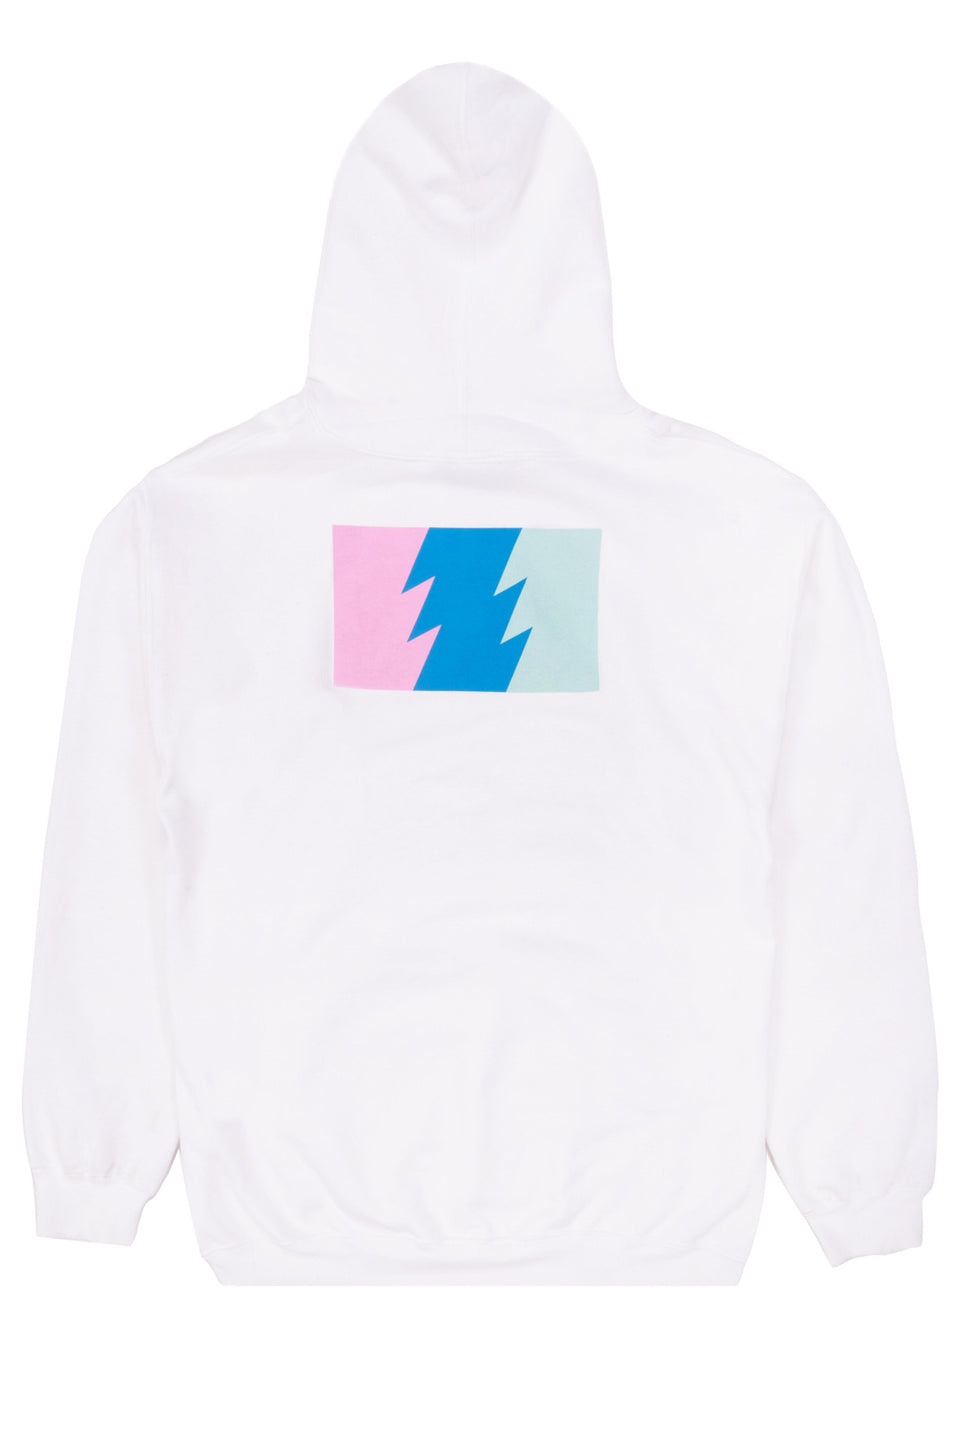 Wildfire 2 Pullover Hoodie